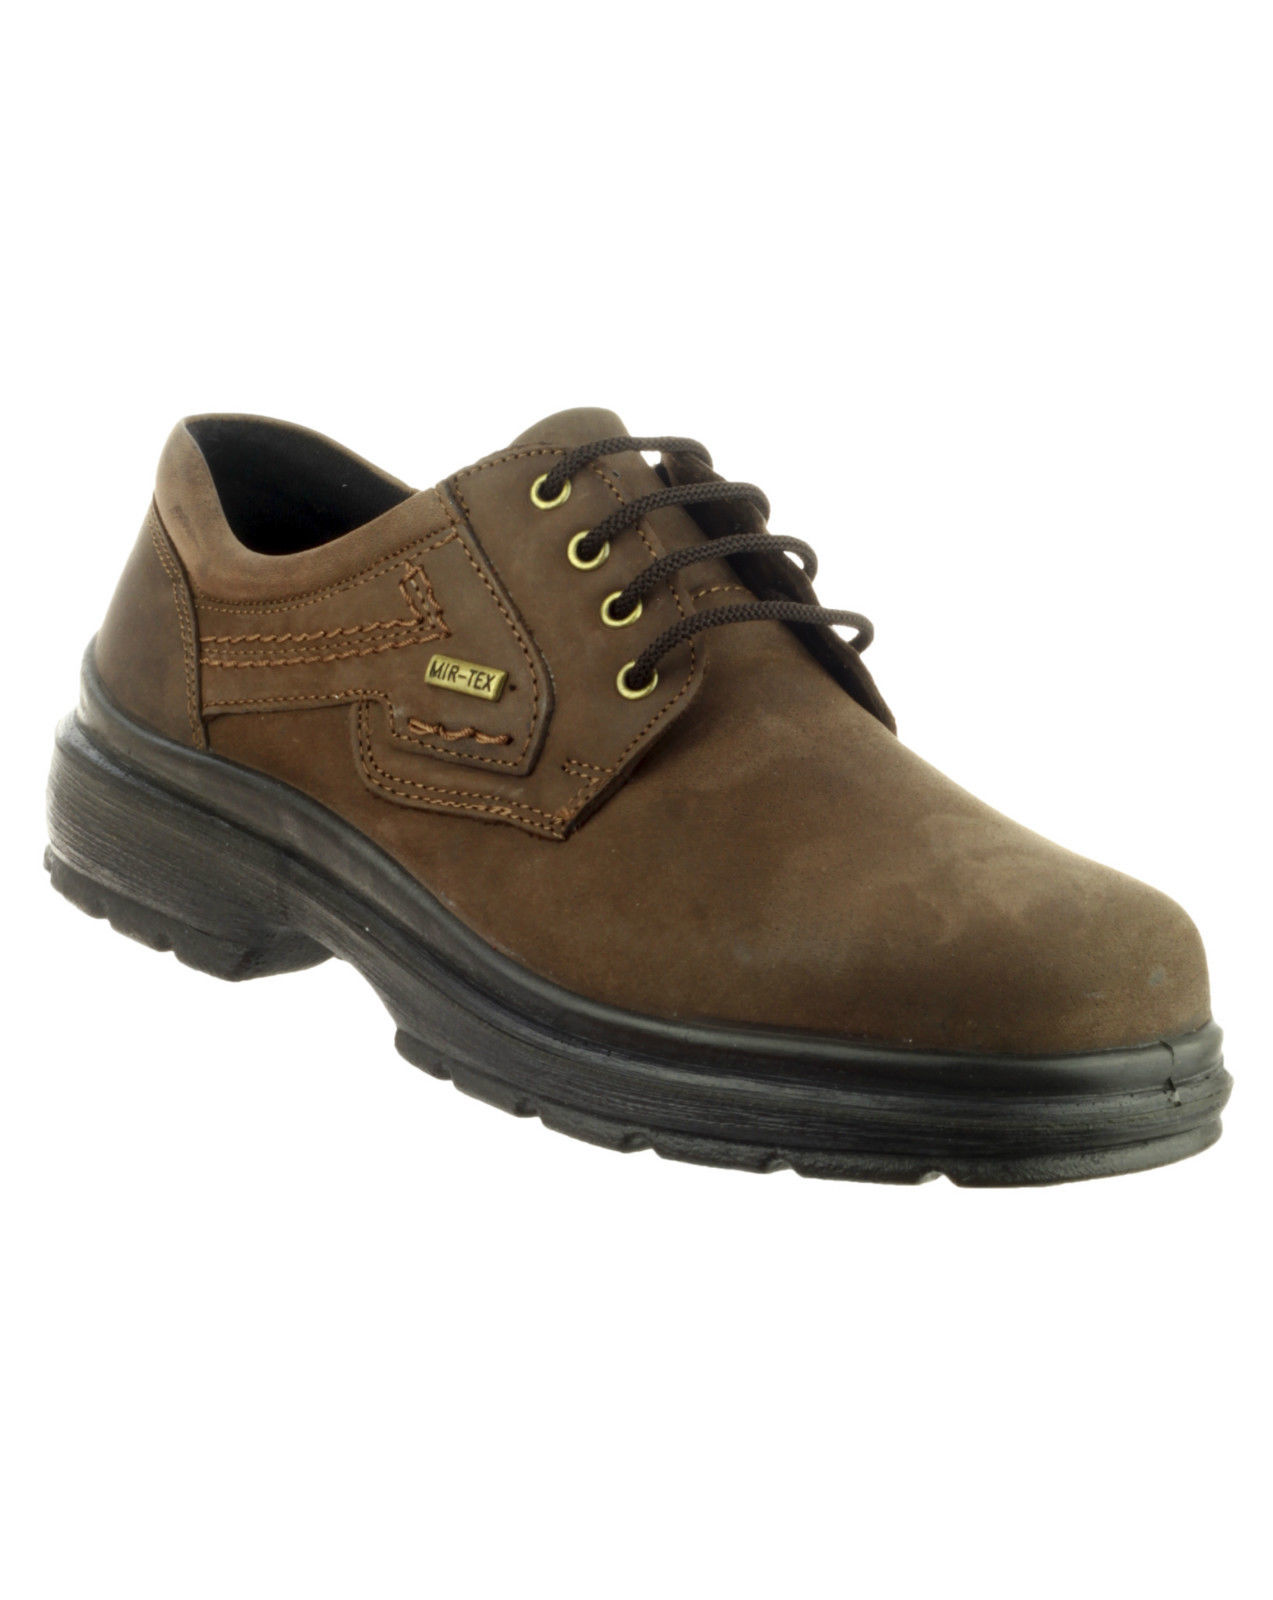 Cotswold Cotswold Cotswold Shipston waterproof leather lace up casual Office Zapatos Talla 6-12 7491e9